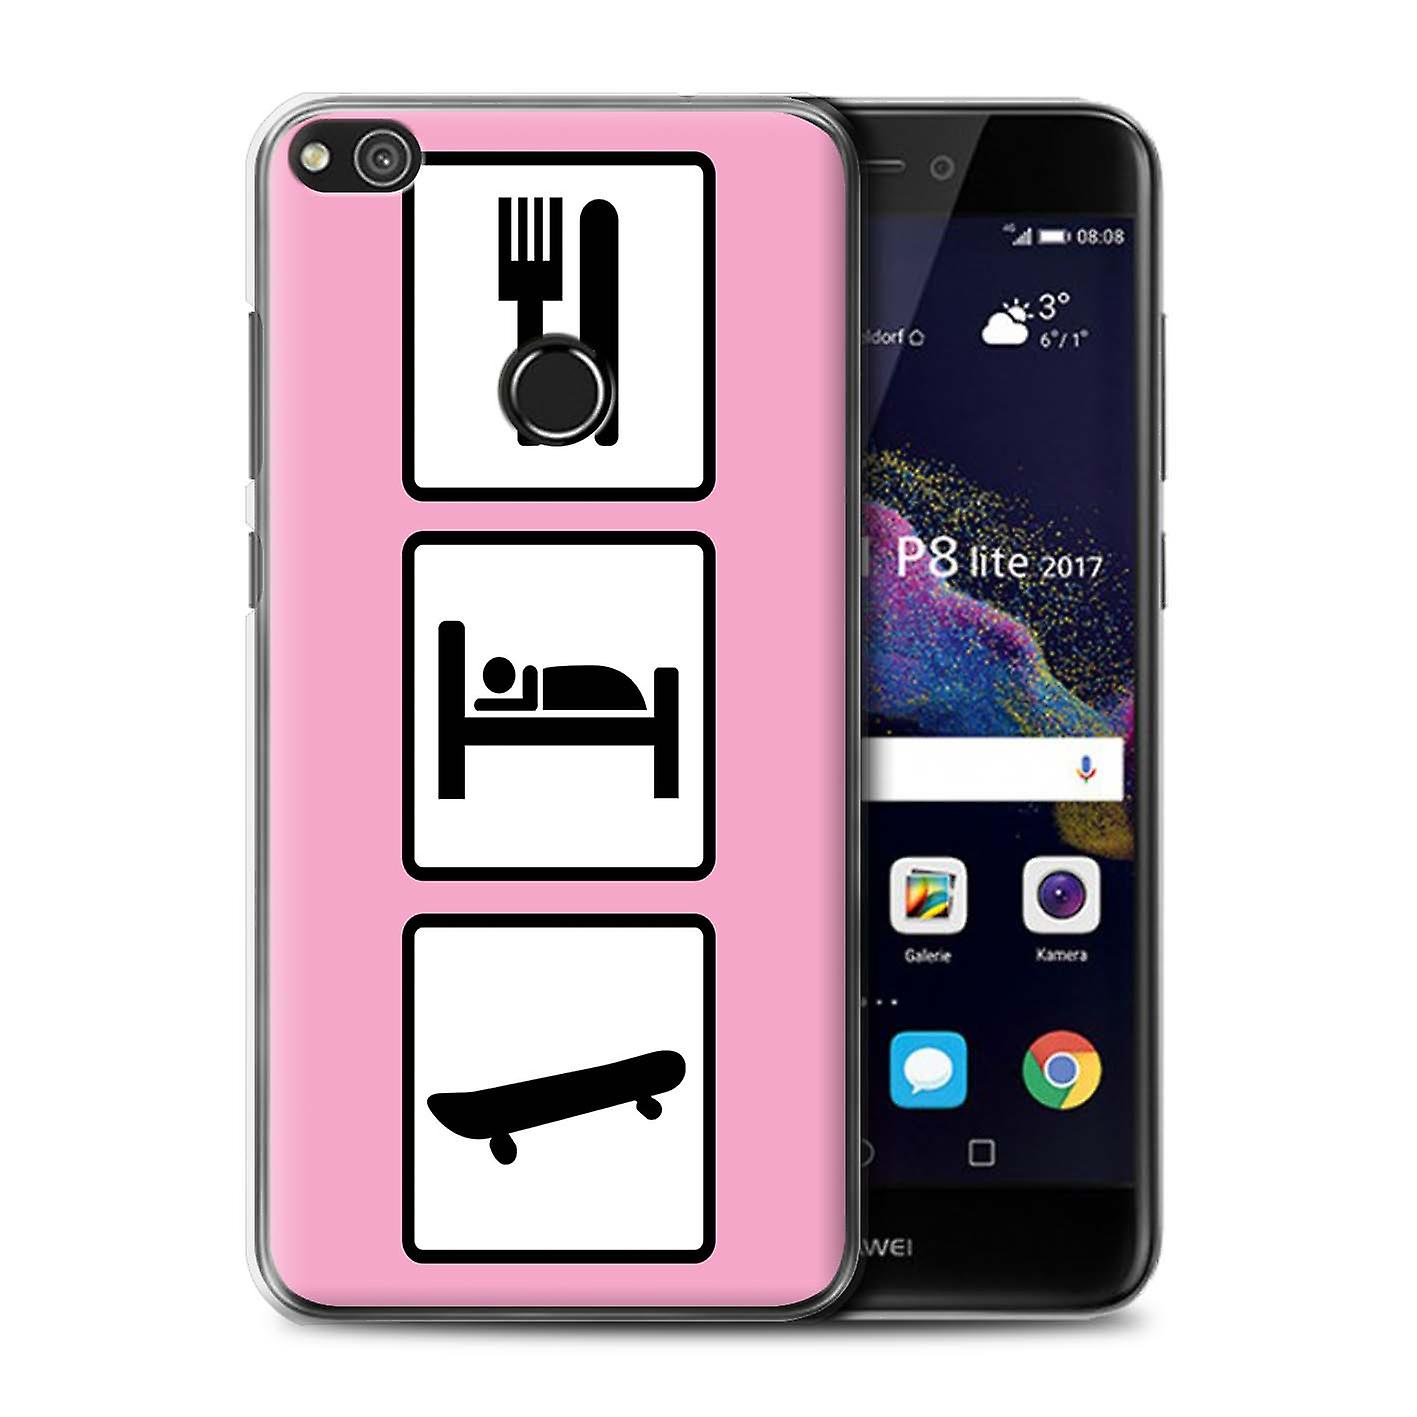 Stuff4 t l phone housse pour huawei p8 lite 2017 skate for Housse huawei p8 lite 2017